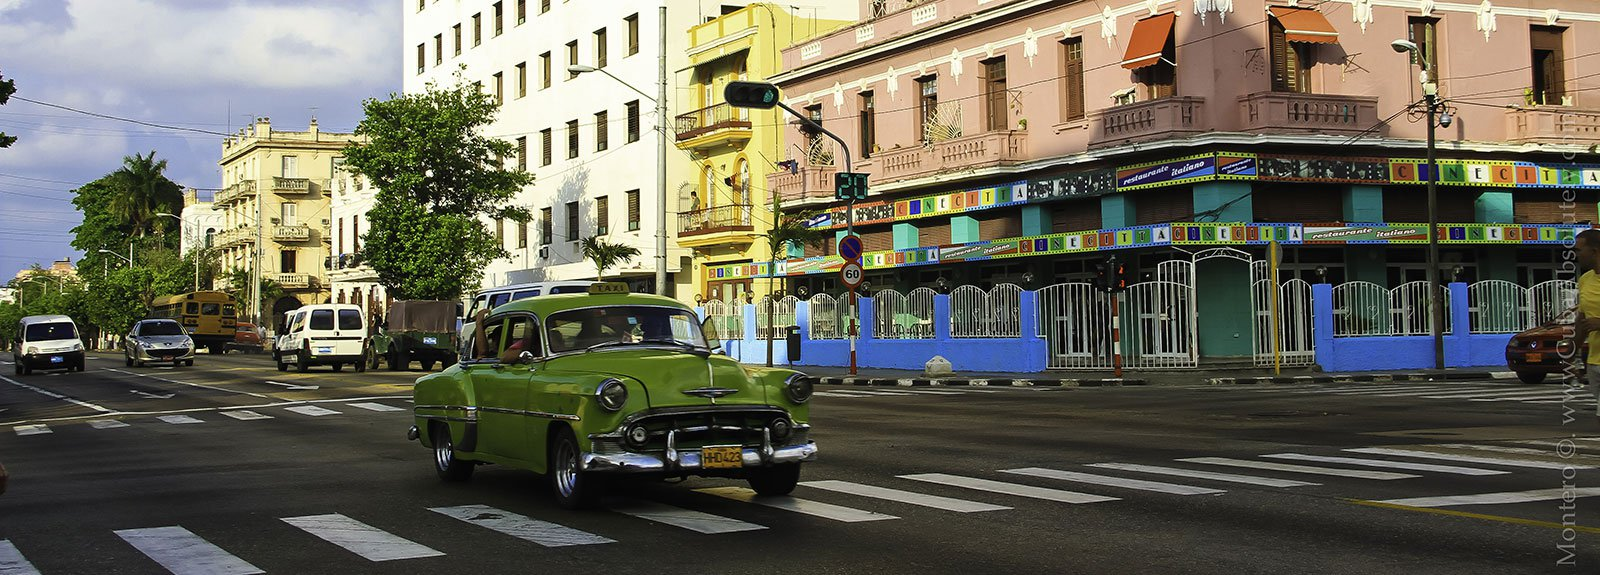 Green old car passing by the street